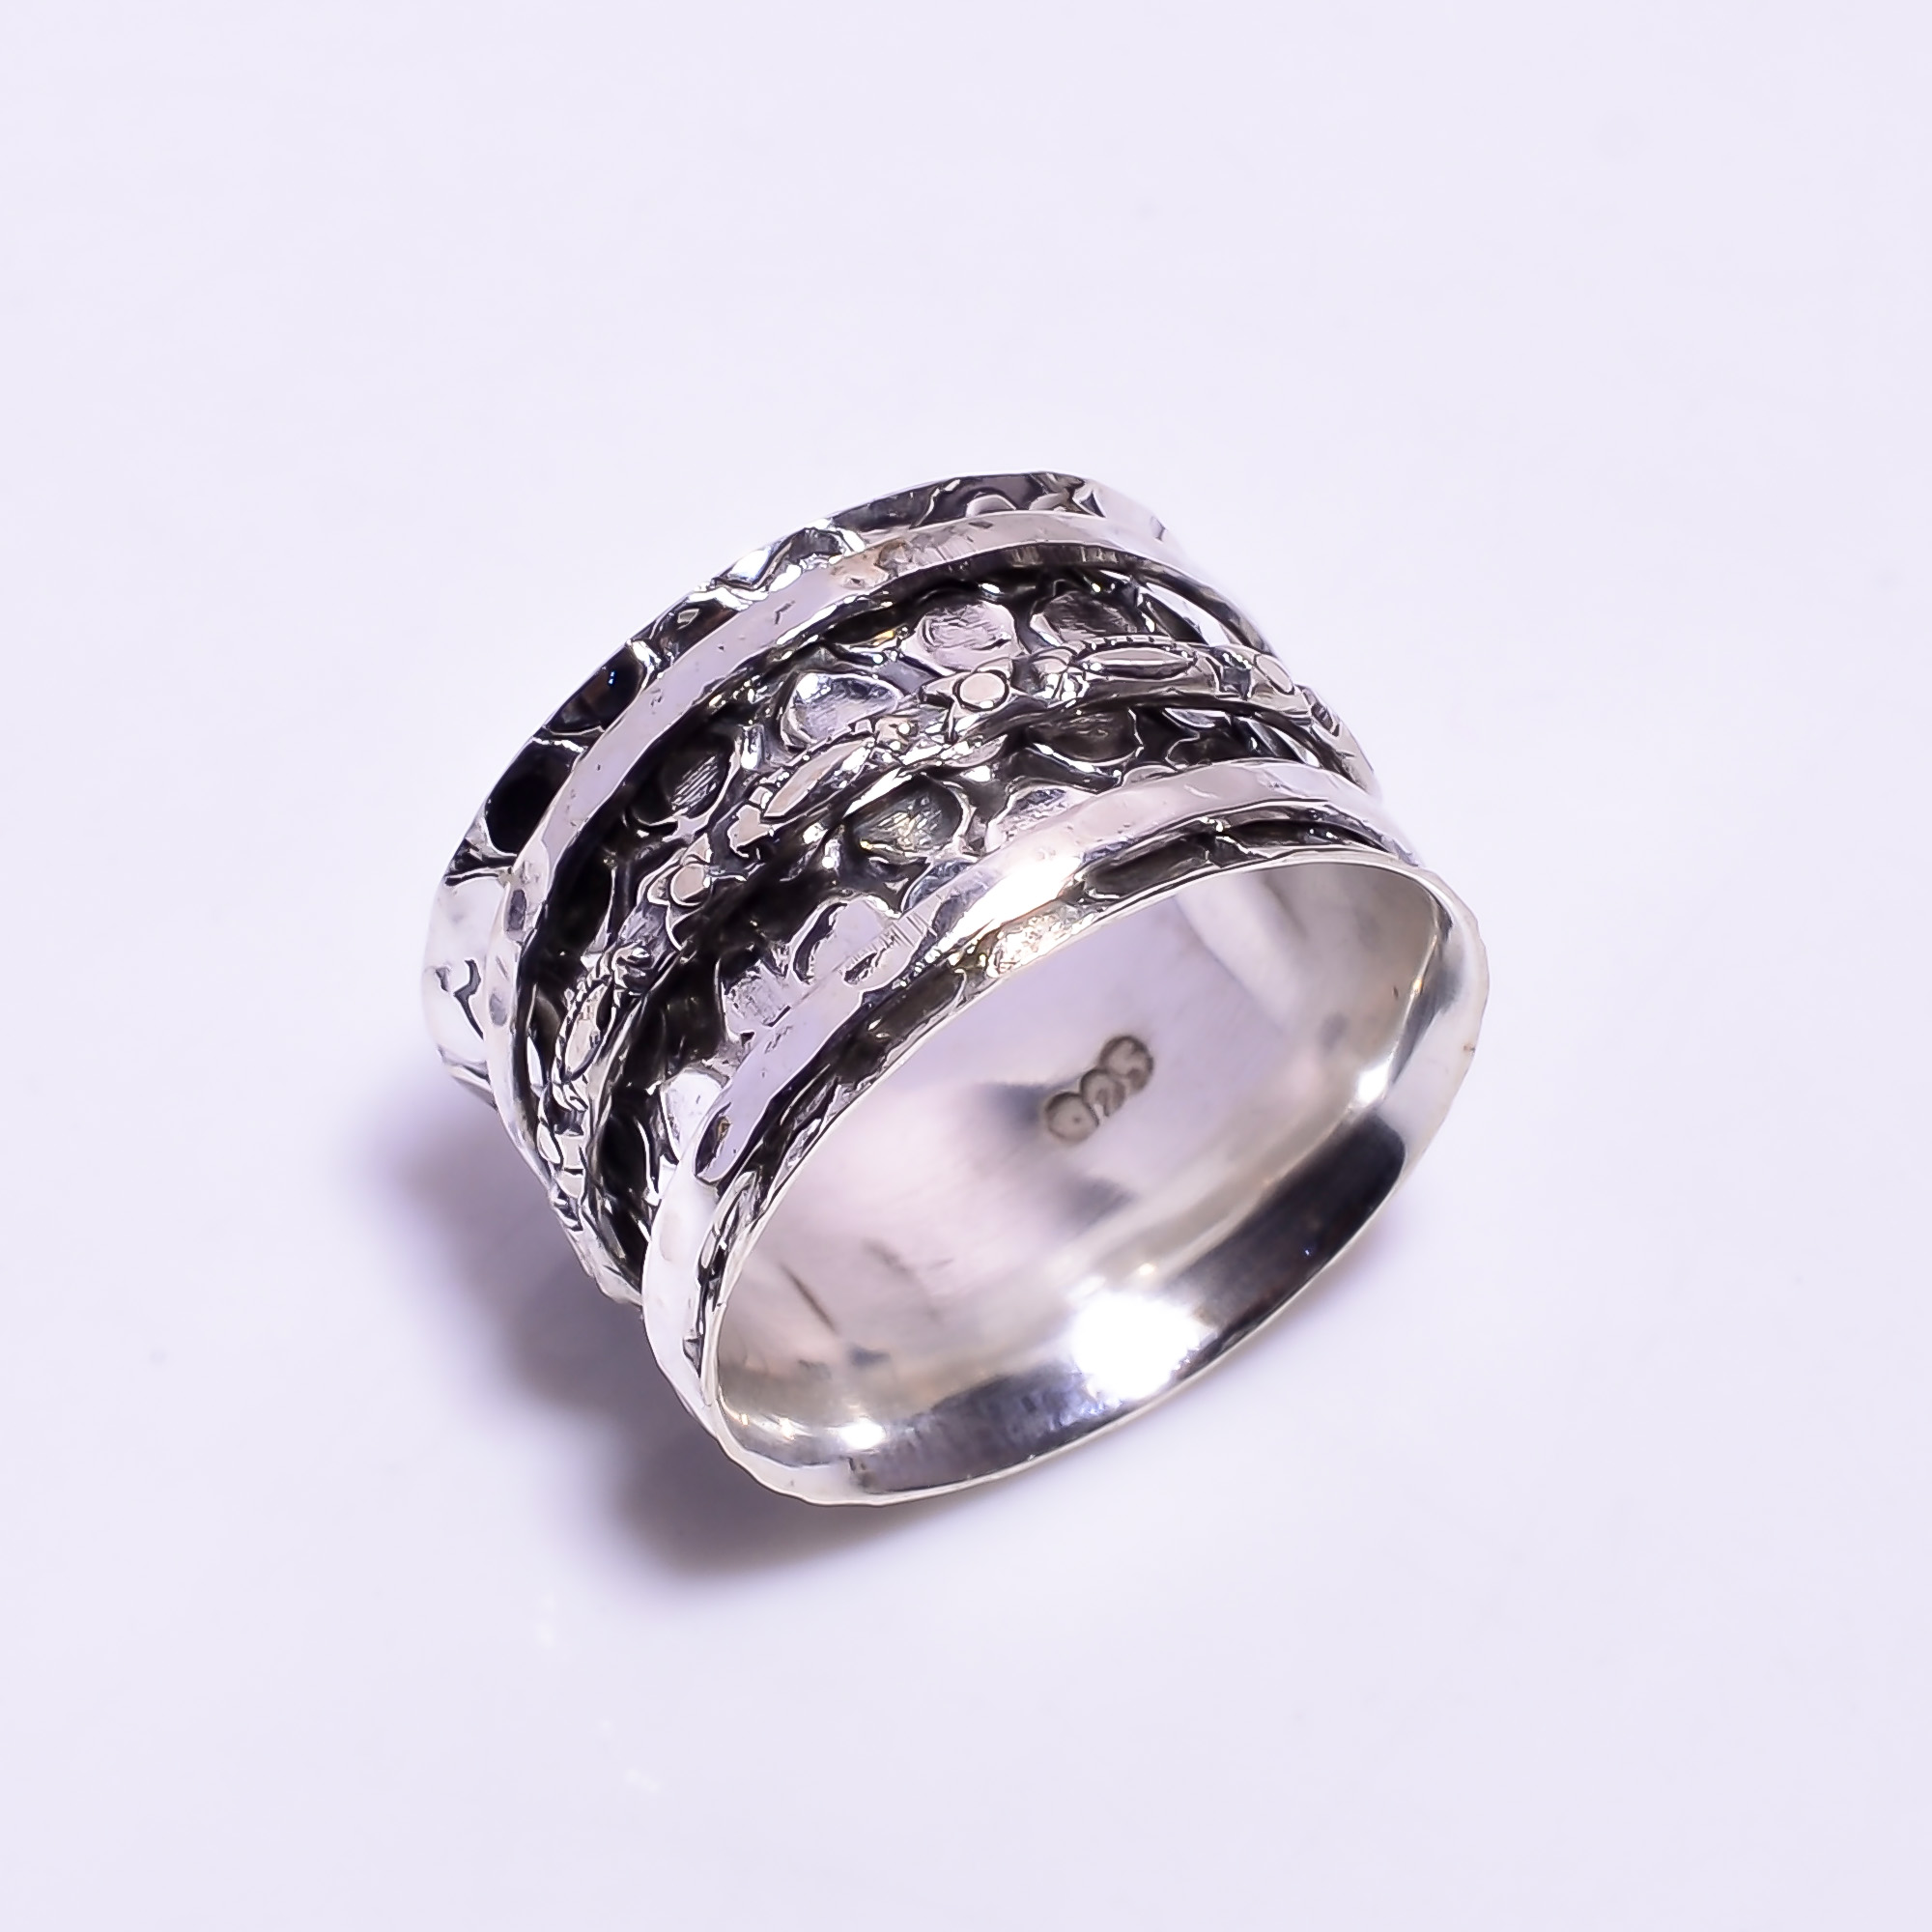 925 Sterling Silver Meditation Spinner Ring Size US 9.25